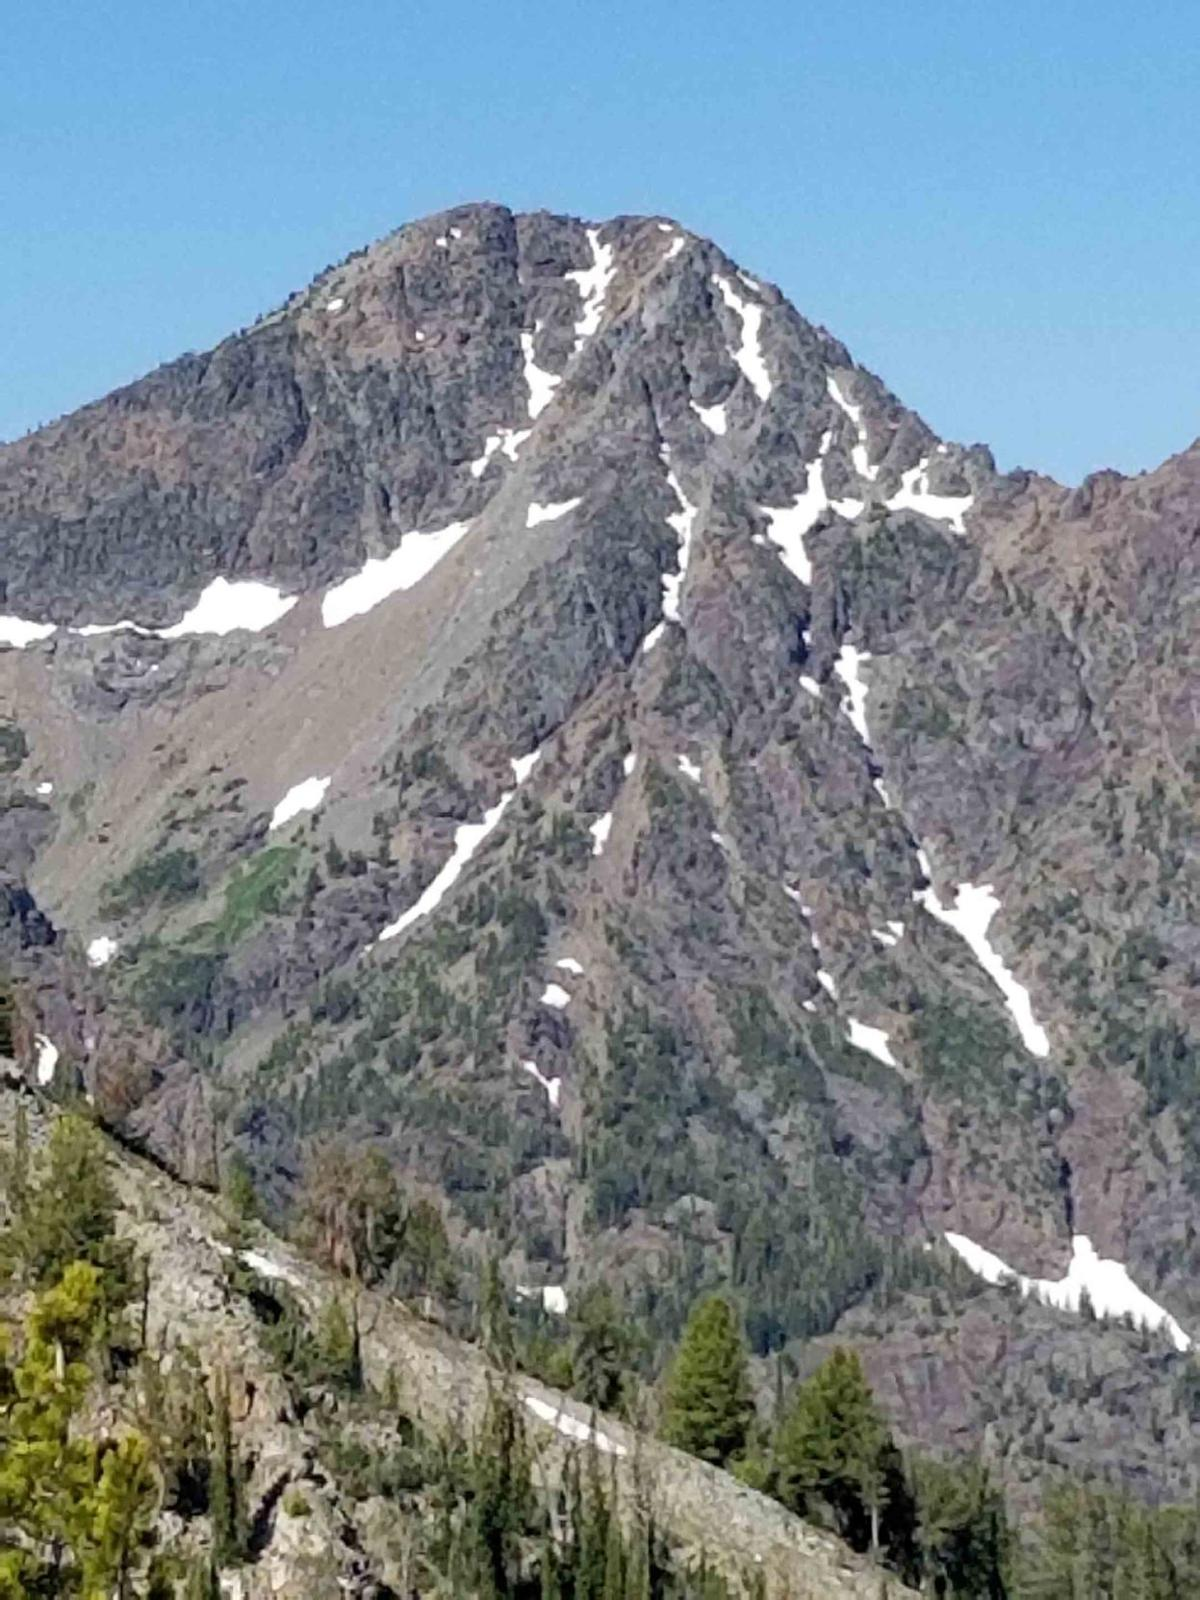 On top, off trail